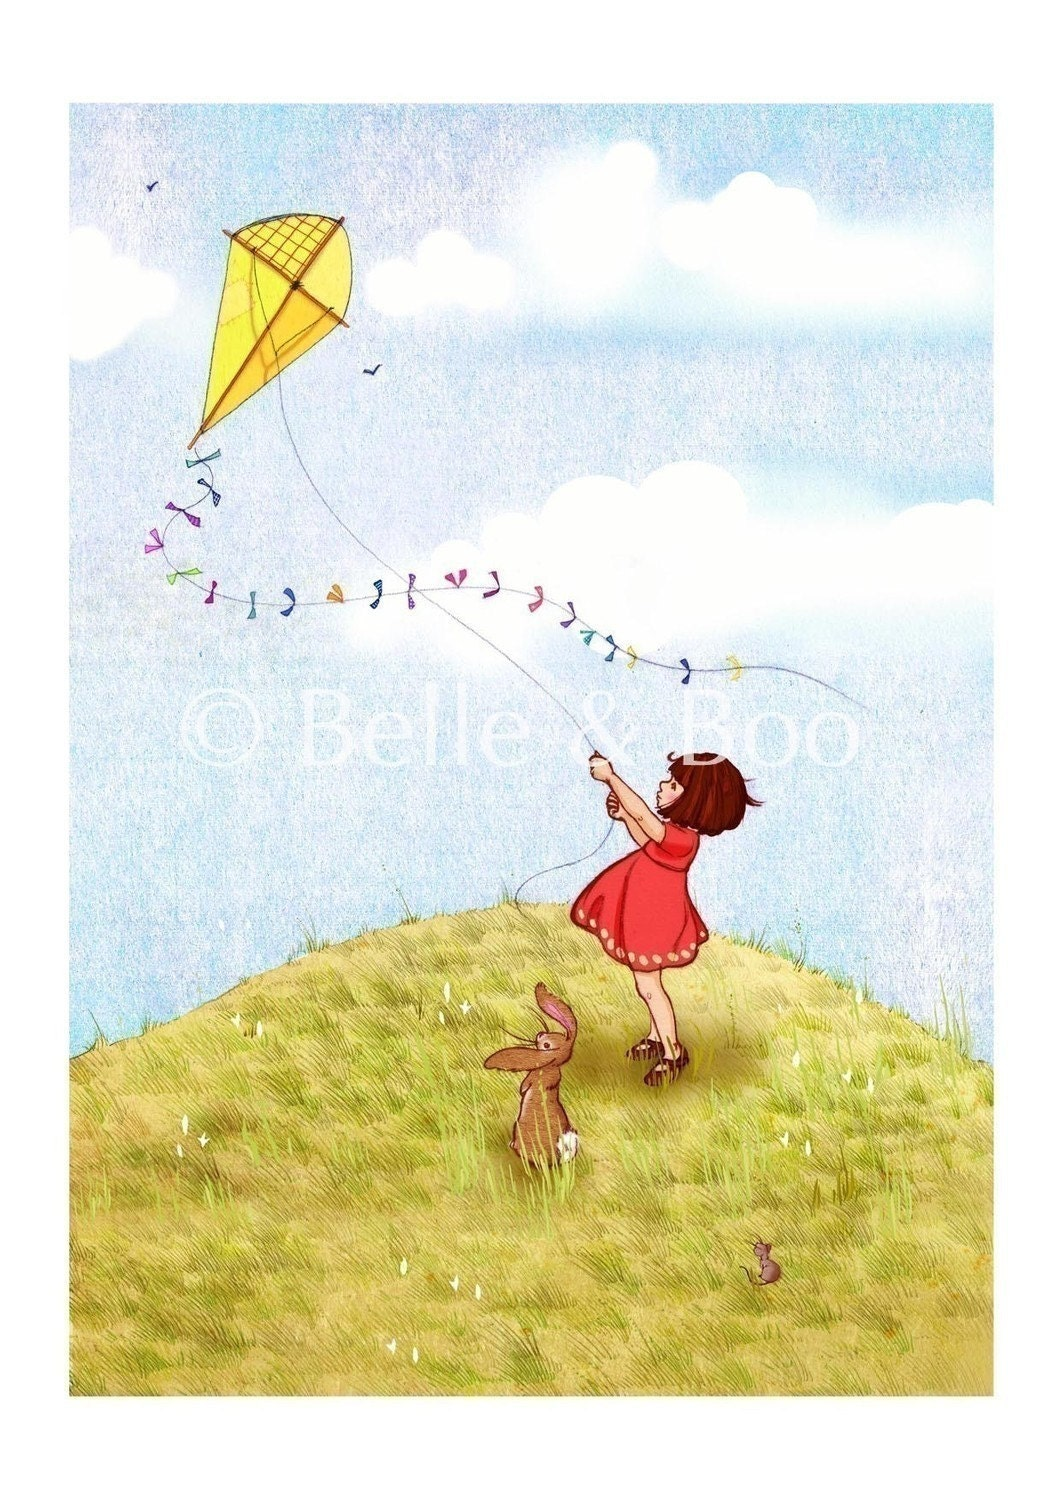 Belle and Boo Fly a Kite